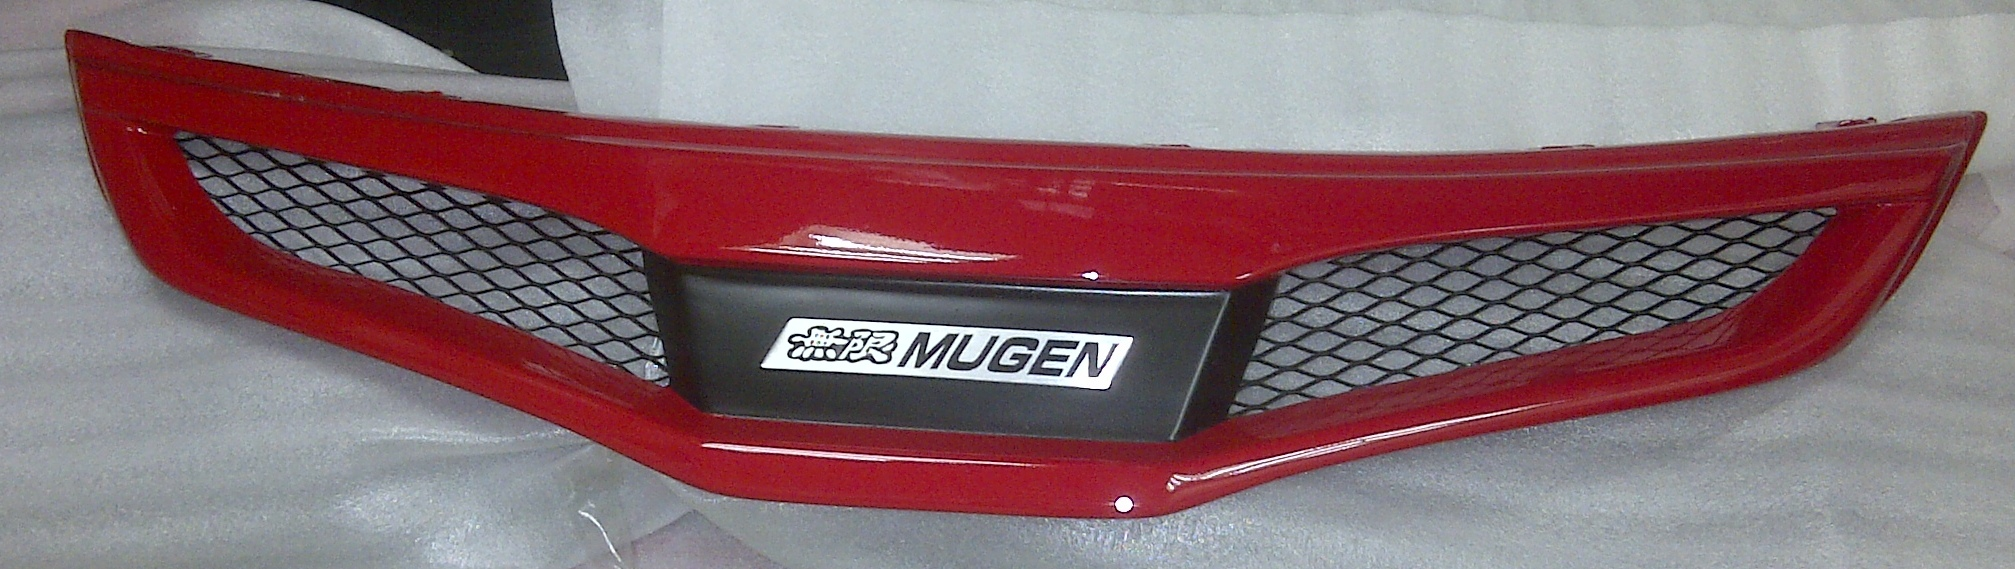 GRILL MUGEN Honda All New Jazz GE8 MMC 2011- up